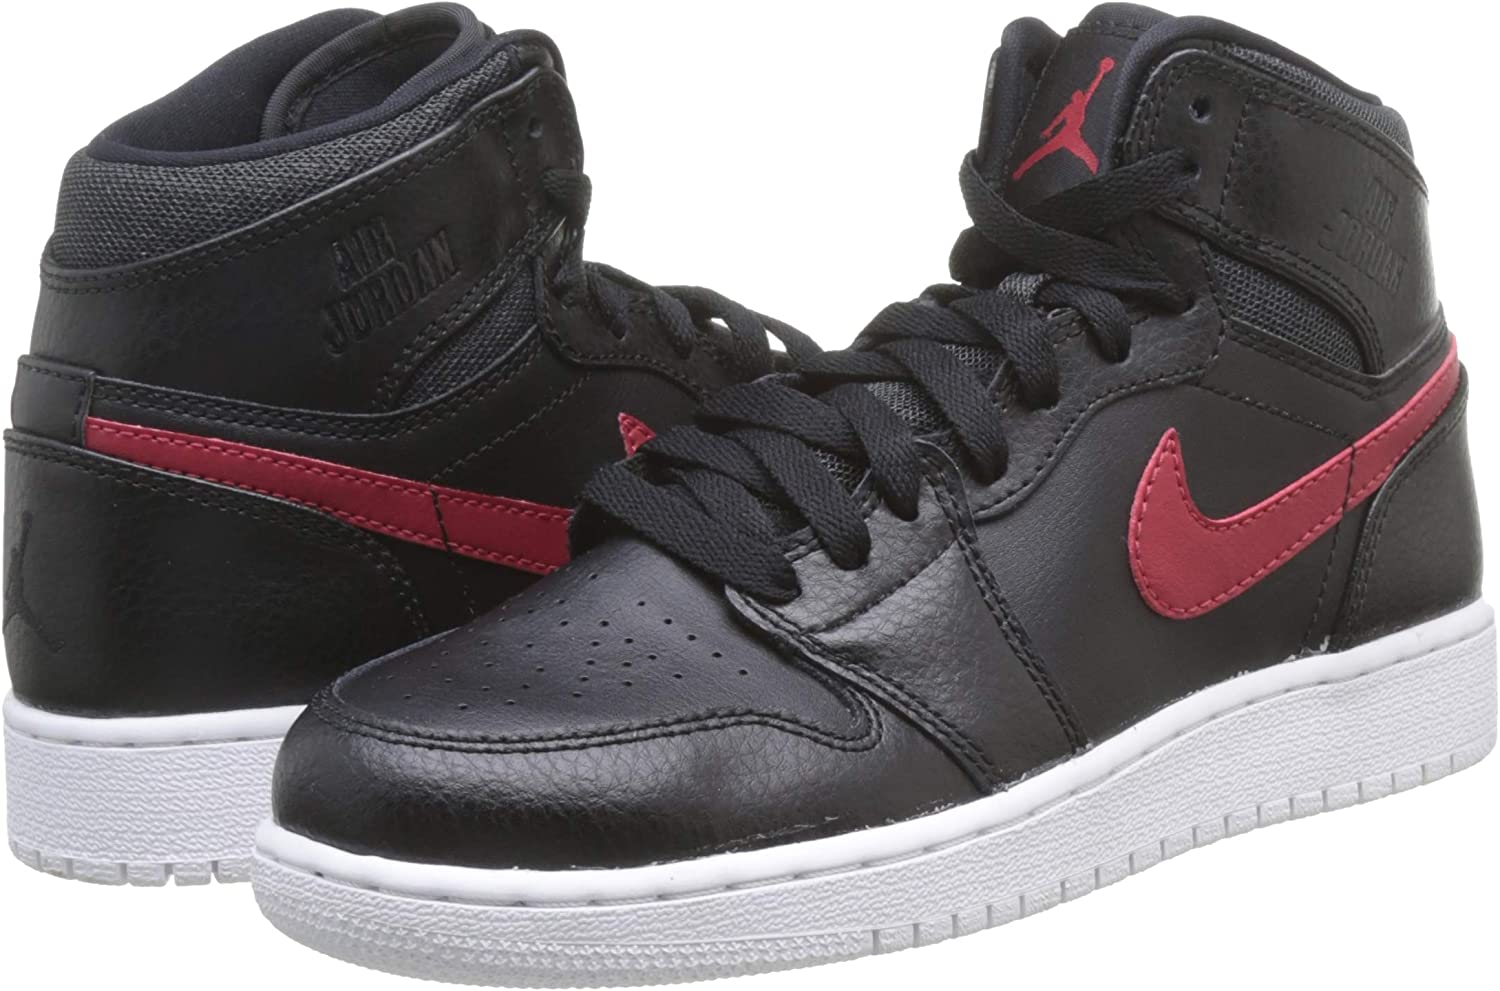 Nike Air Jordan 1 Retro High Bg Zapatillas de Baloncesto para Ni/ños